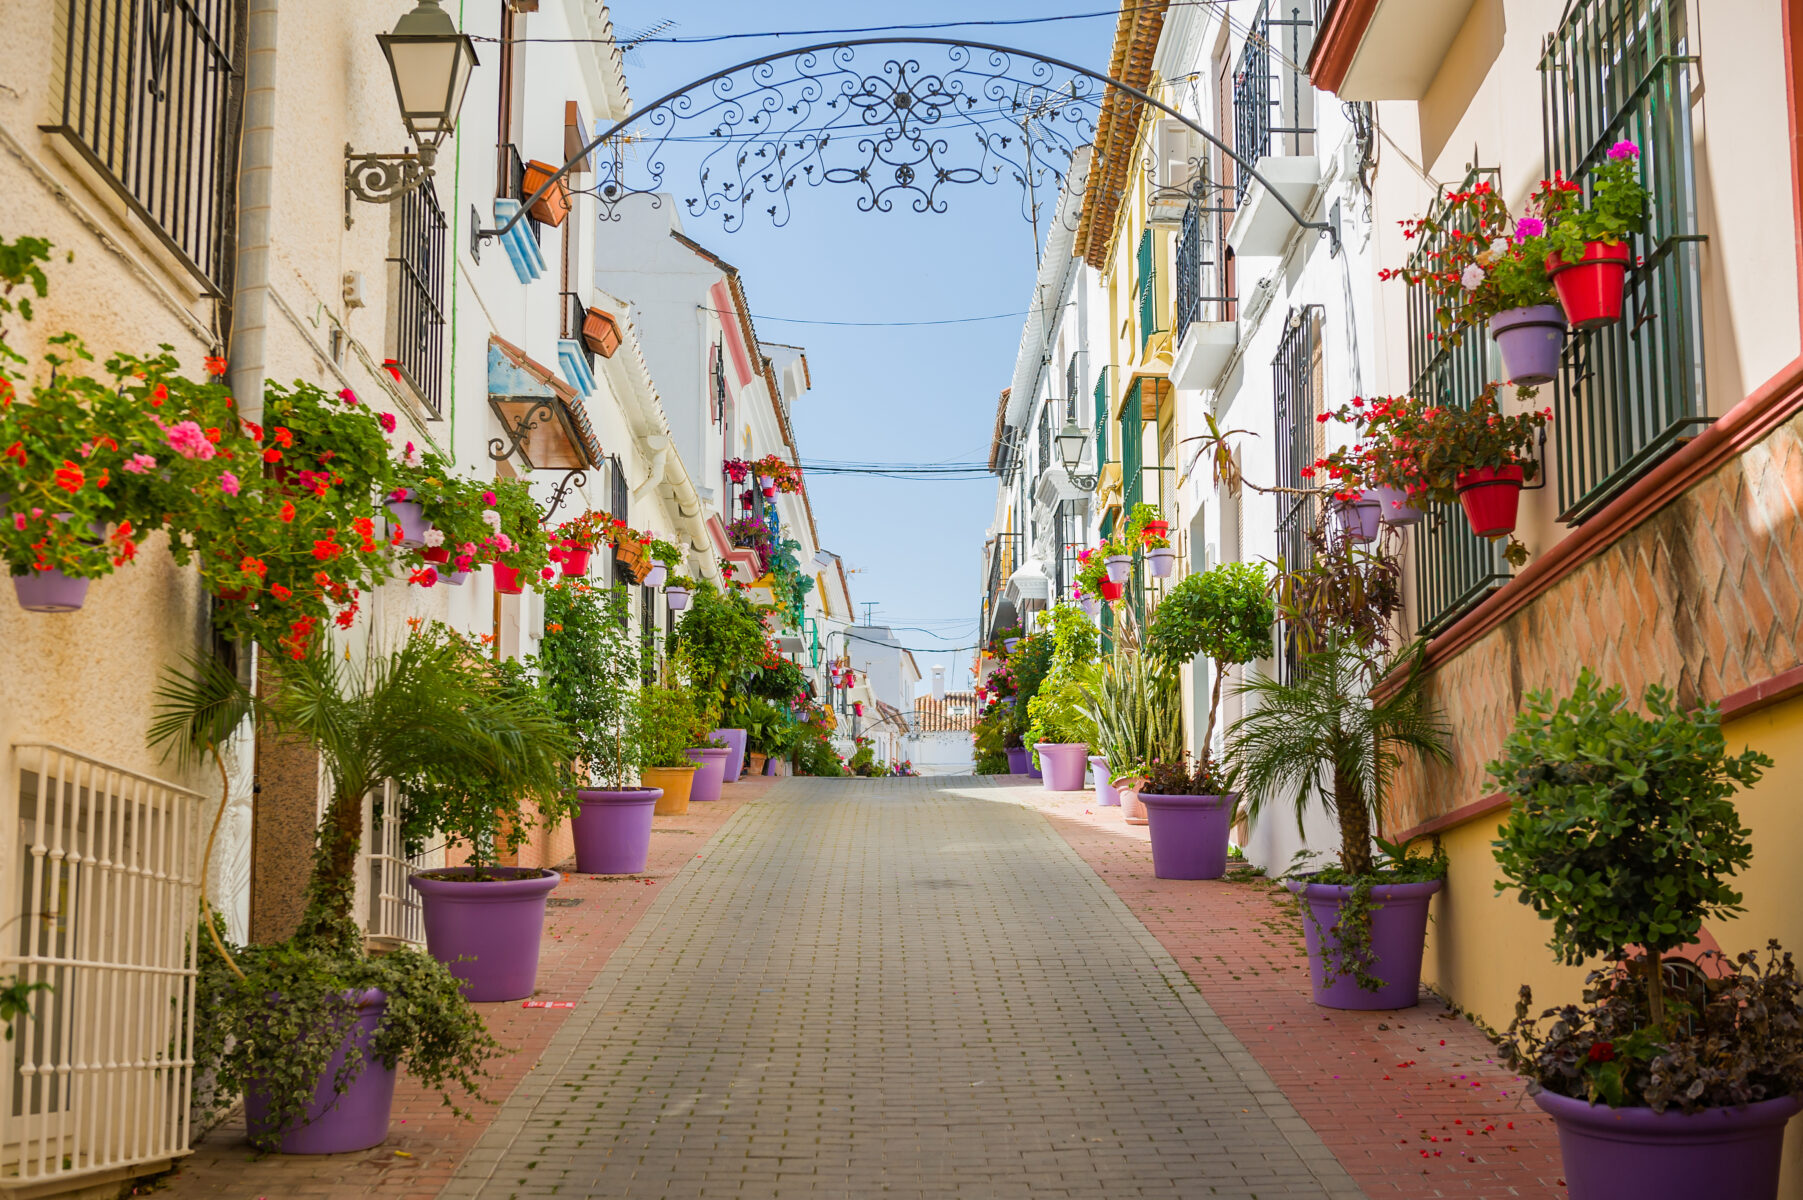 Picturesque apartments with flowers in Marbella, Spain